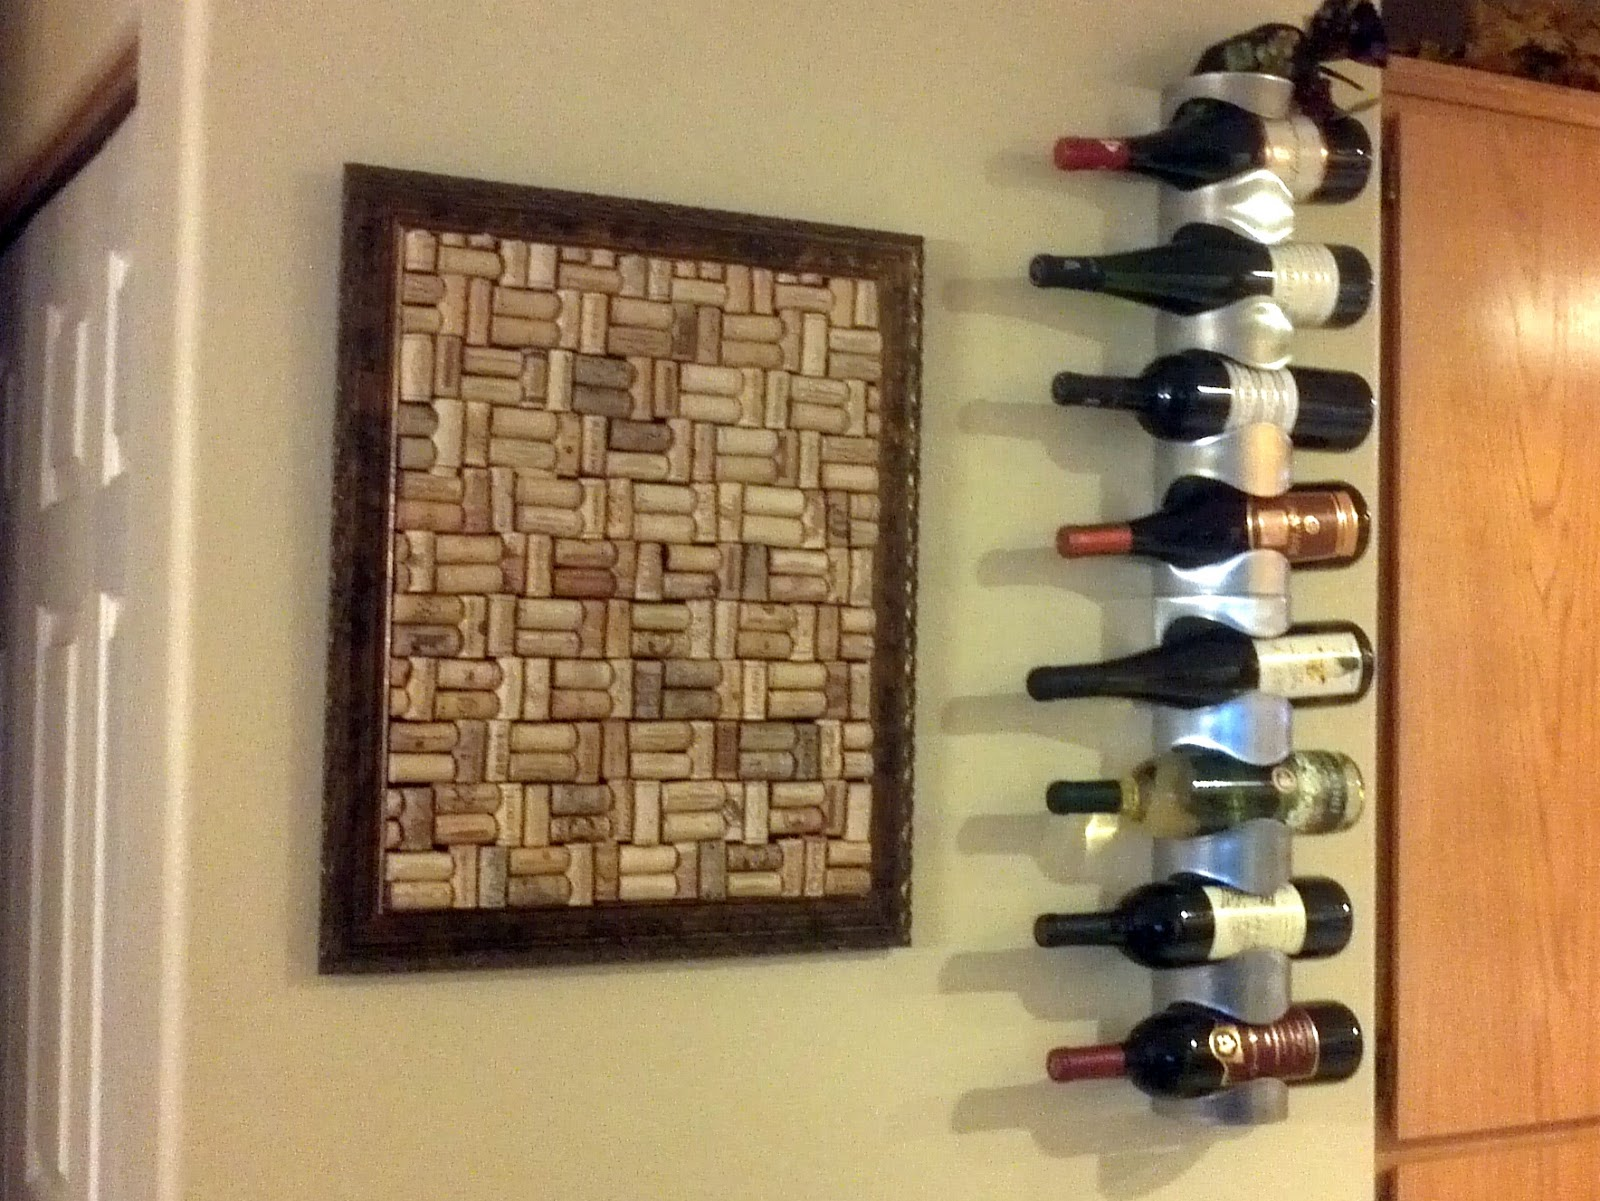 Crafts to do with wine corks - Wine Cork Bath Mat The Original Inventor Blogs On Craftynest Com Click On The Link And You Can Find A How To Tutorial As Well As A Few Updates On How The